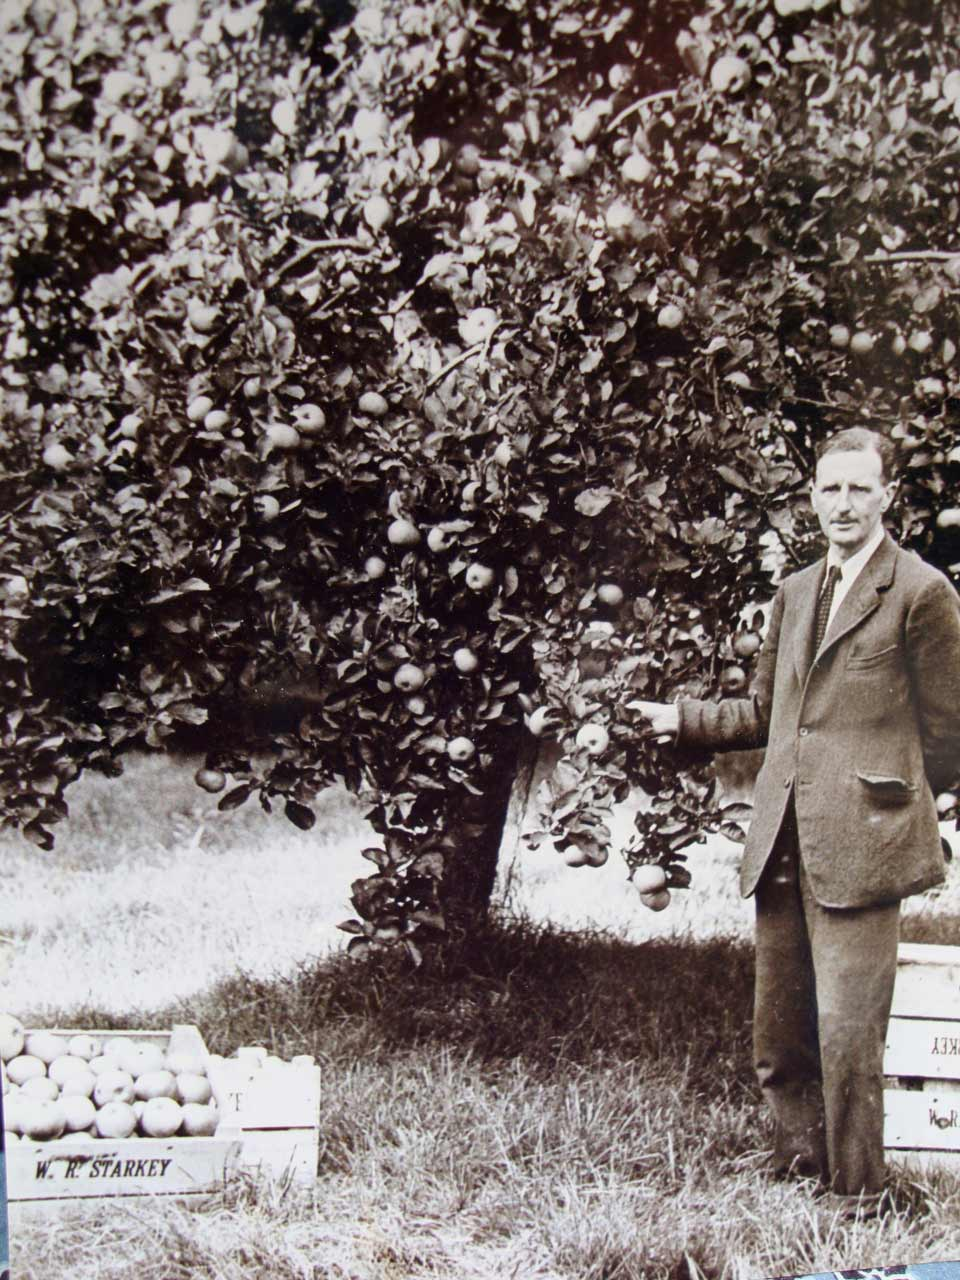 Then came William, seen here with one of the original Bramley trees (we still have some of the boxes!)